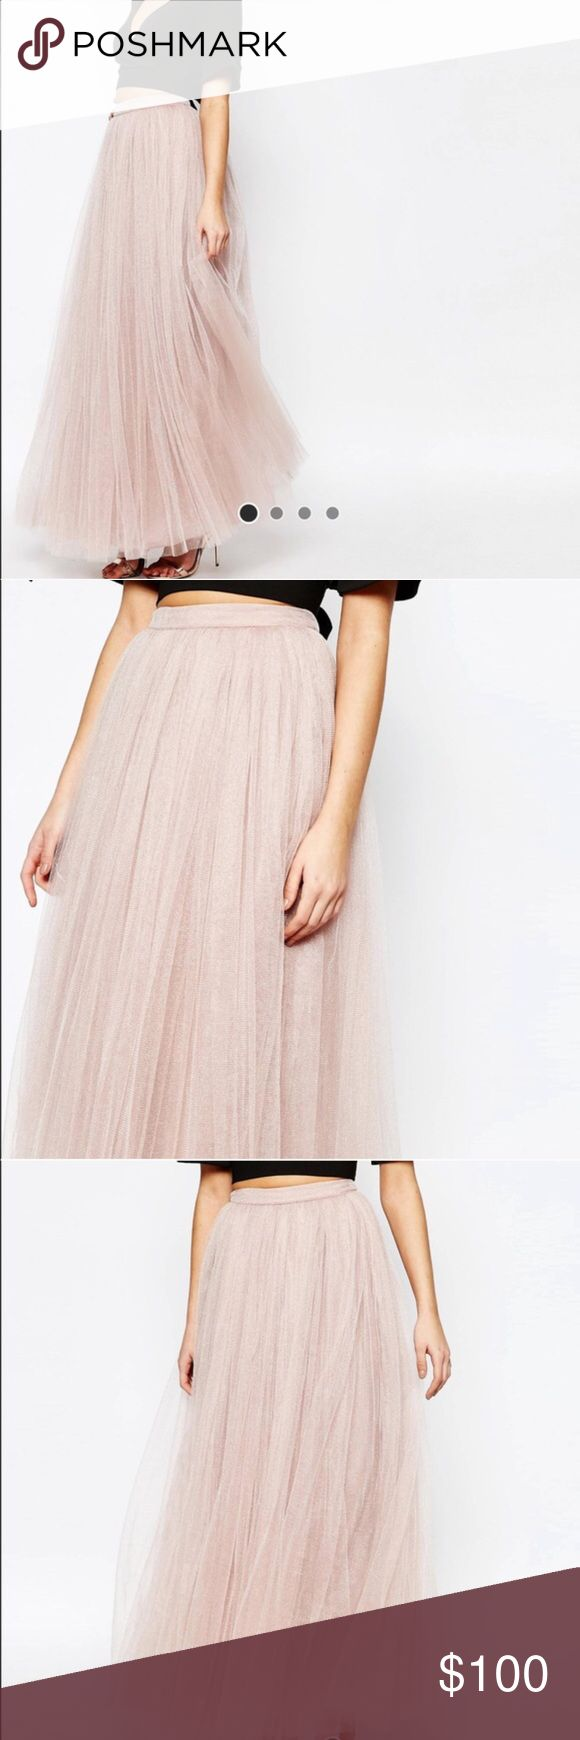 Little mistress maxi tulle skirt New with tags, price is firm uk6/us2. ASOS Skirts Maxi